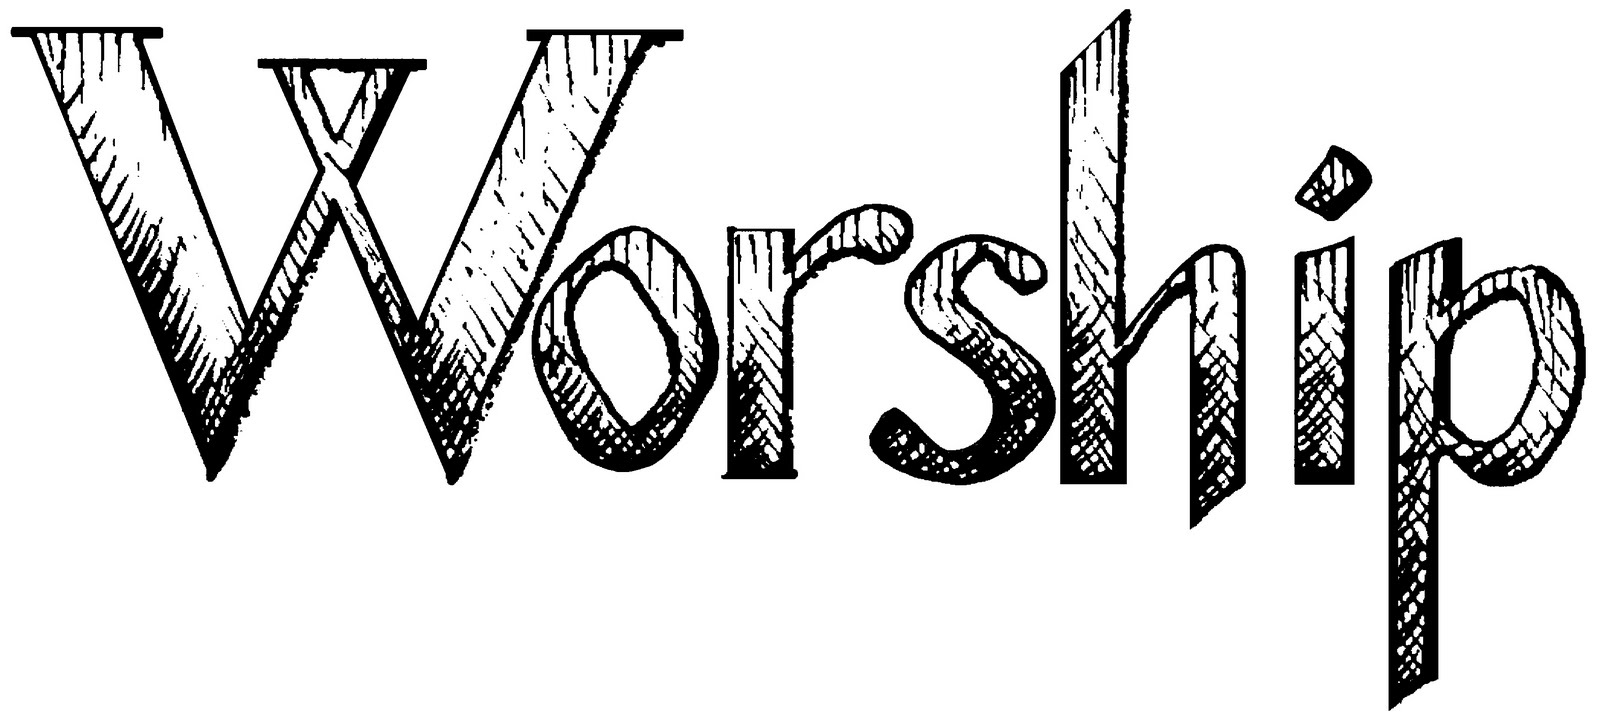 hight resolution of welcome to worship clipart clipart kid